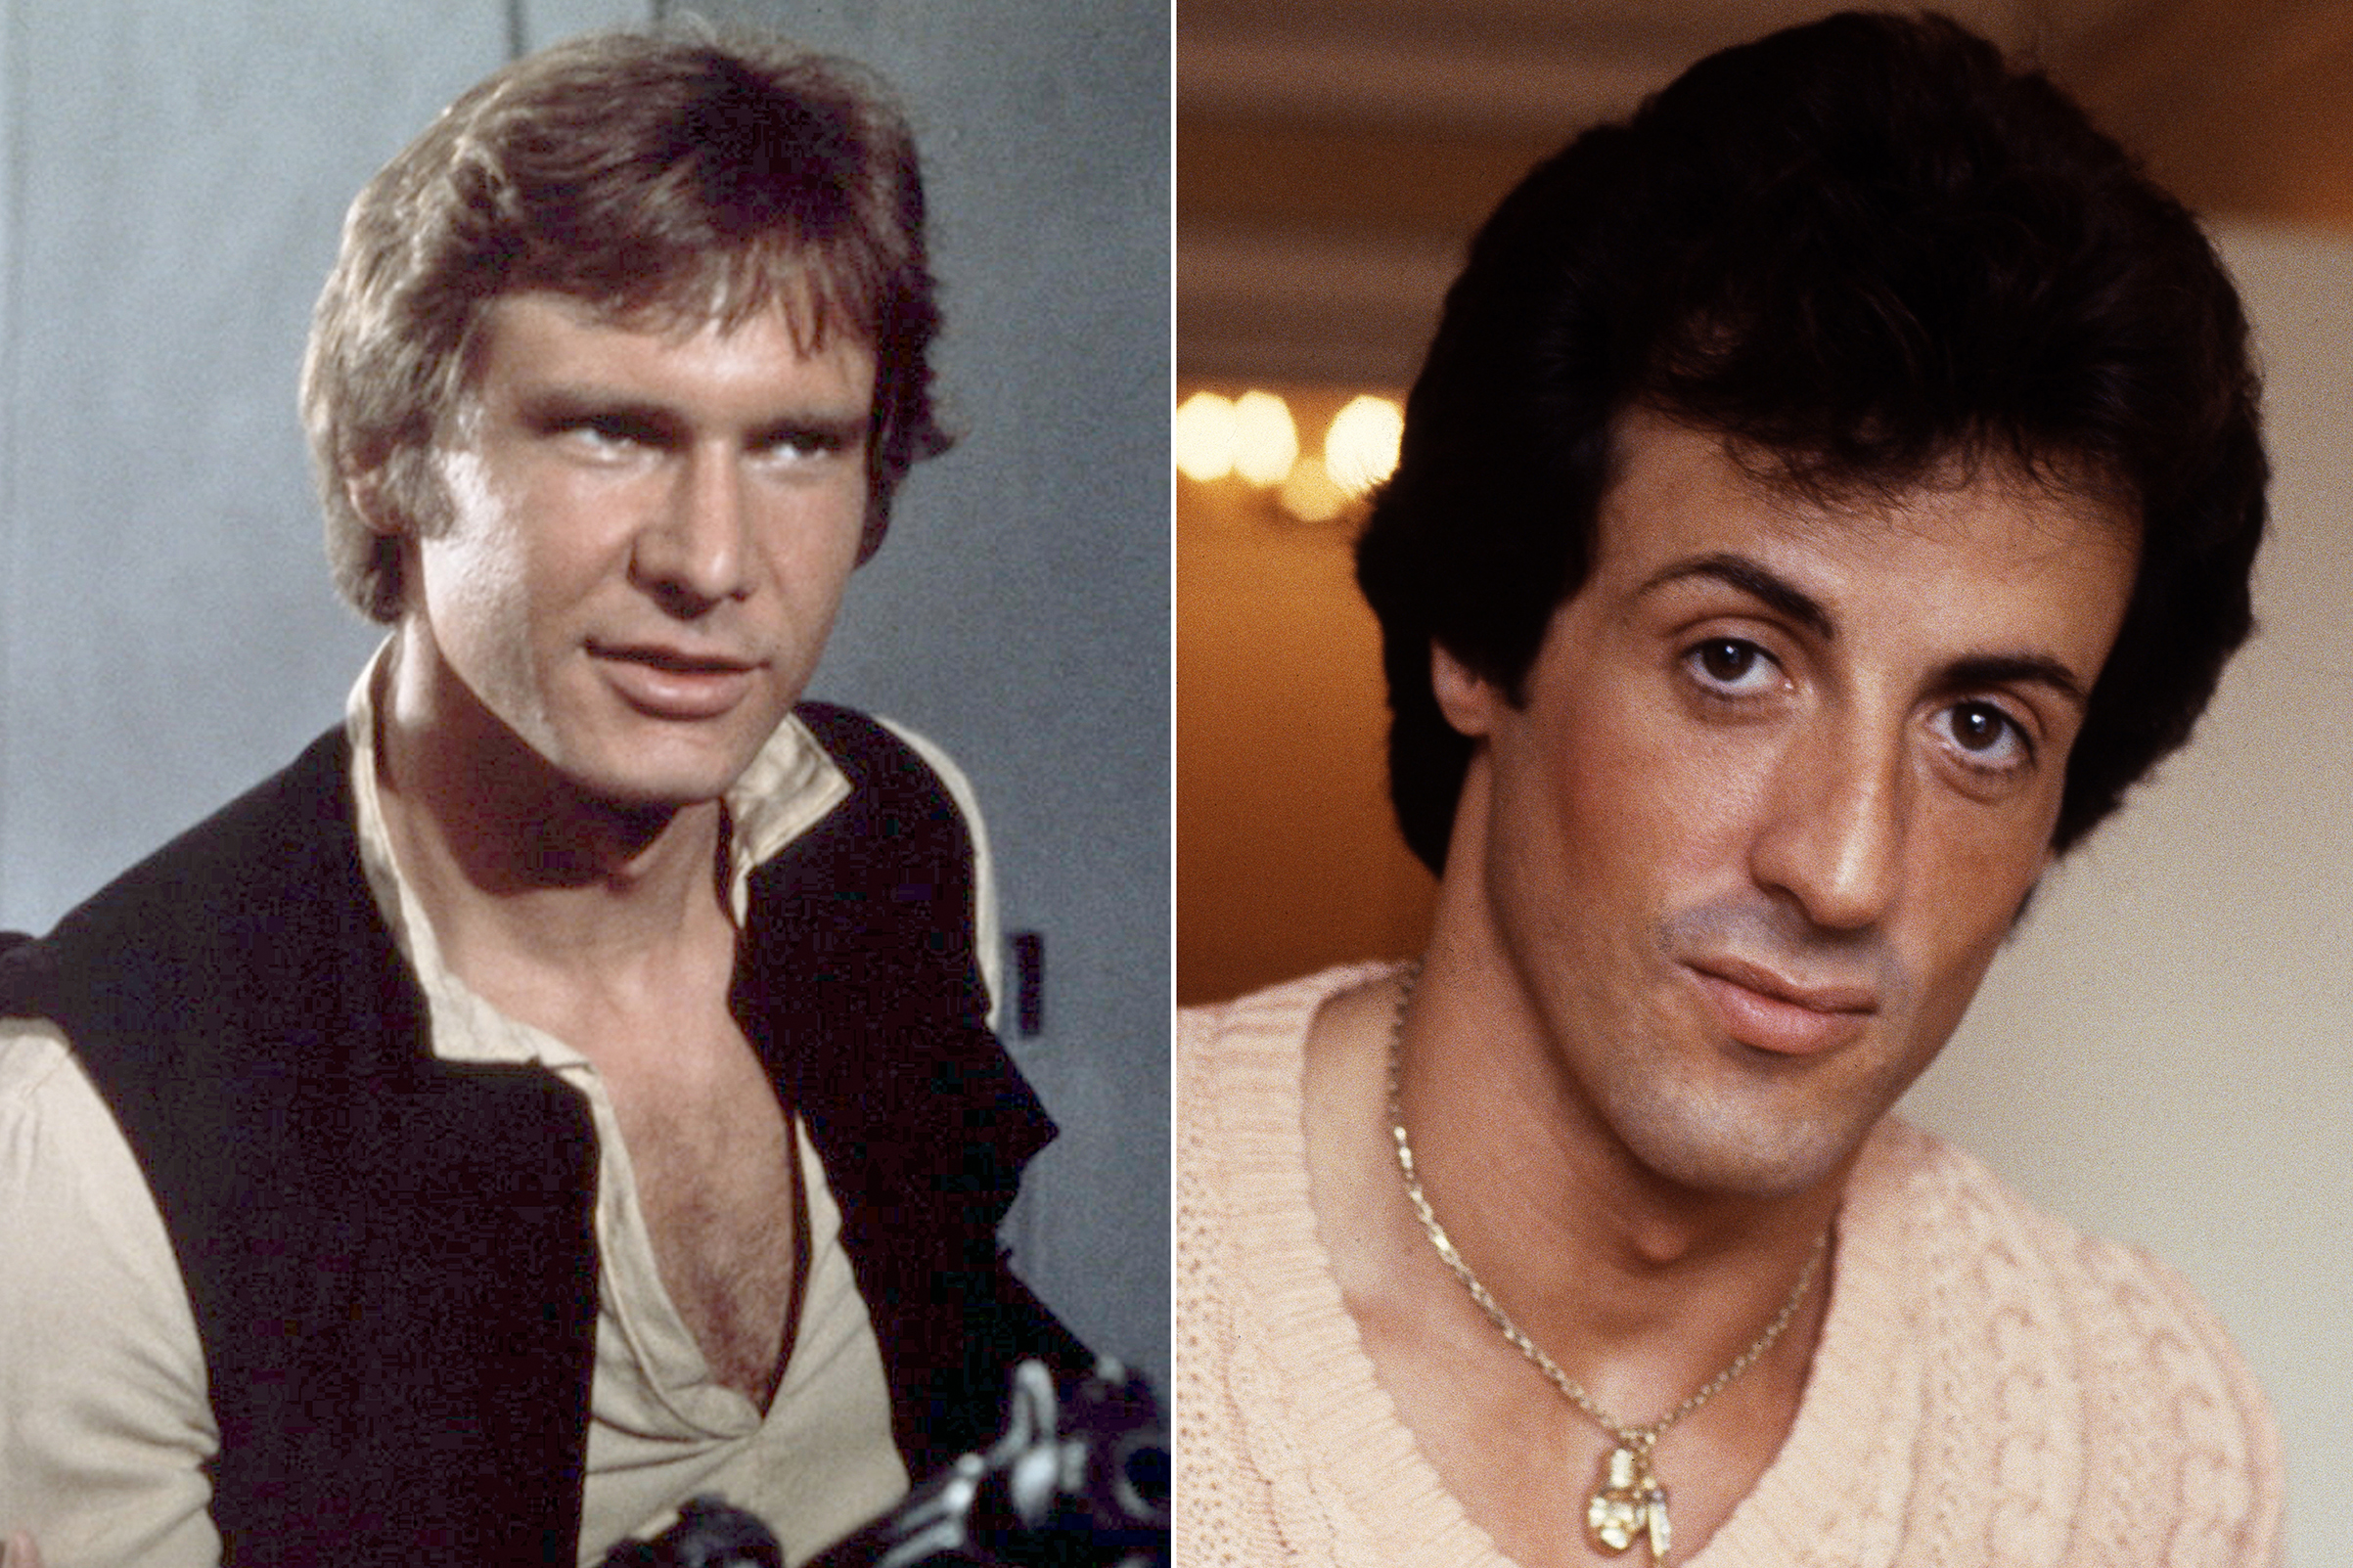 Sylvester Stallone was almost cast as Han Solo in Star Wars